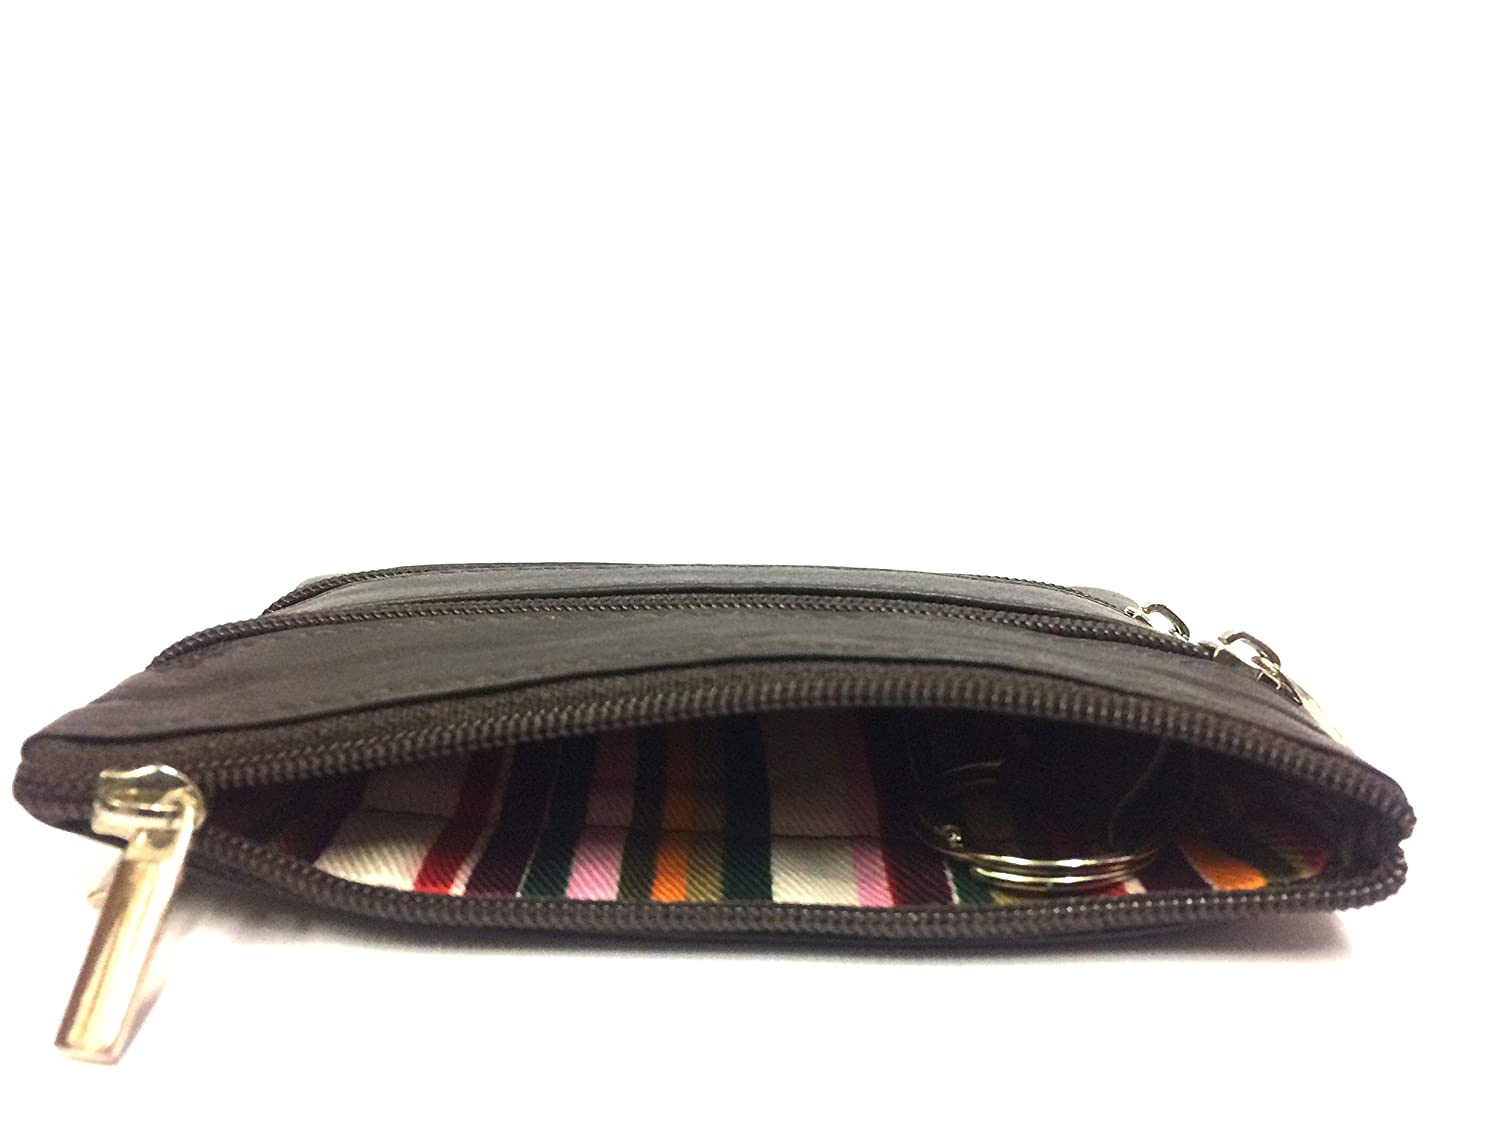 Quality London Leather Goods Premium Zip Coin Purse Change Pouch Dark Brown New